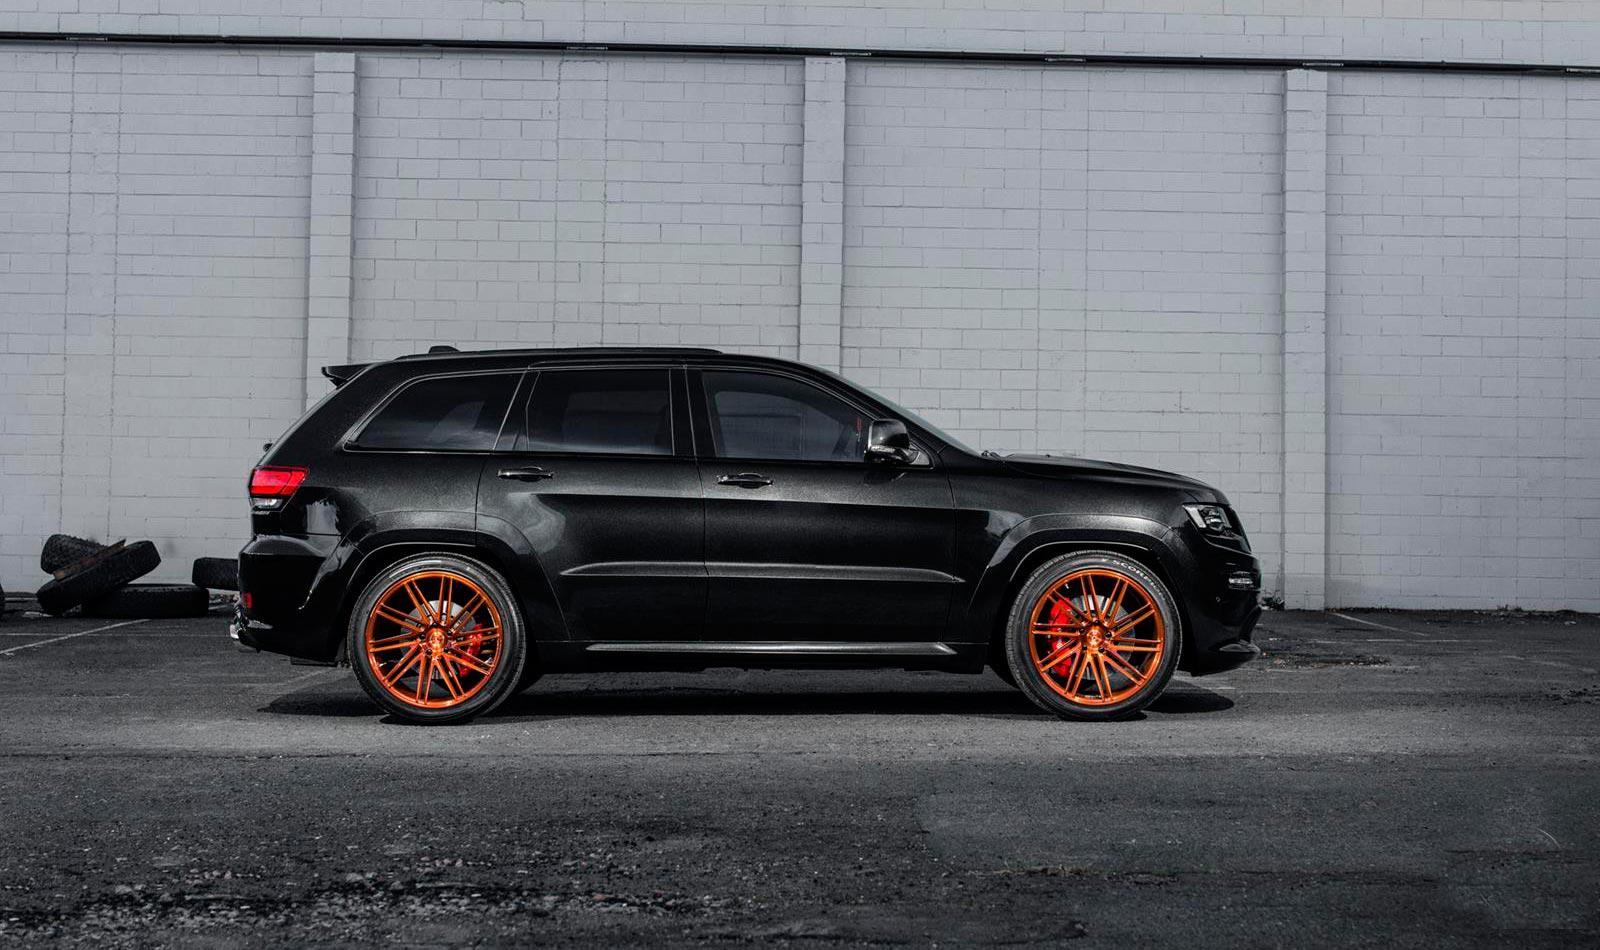 jeep grand cherokee srt8 tuning blog. Black Bedroom Furniture Sets. Home Design Ideas